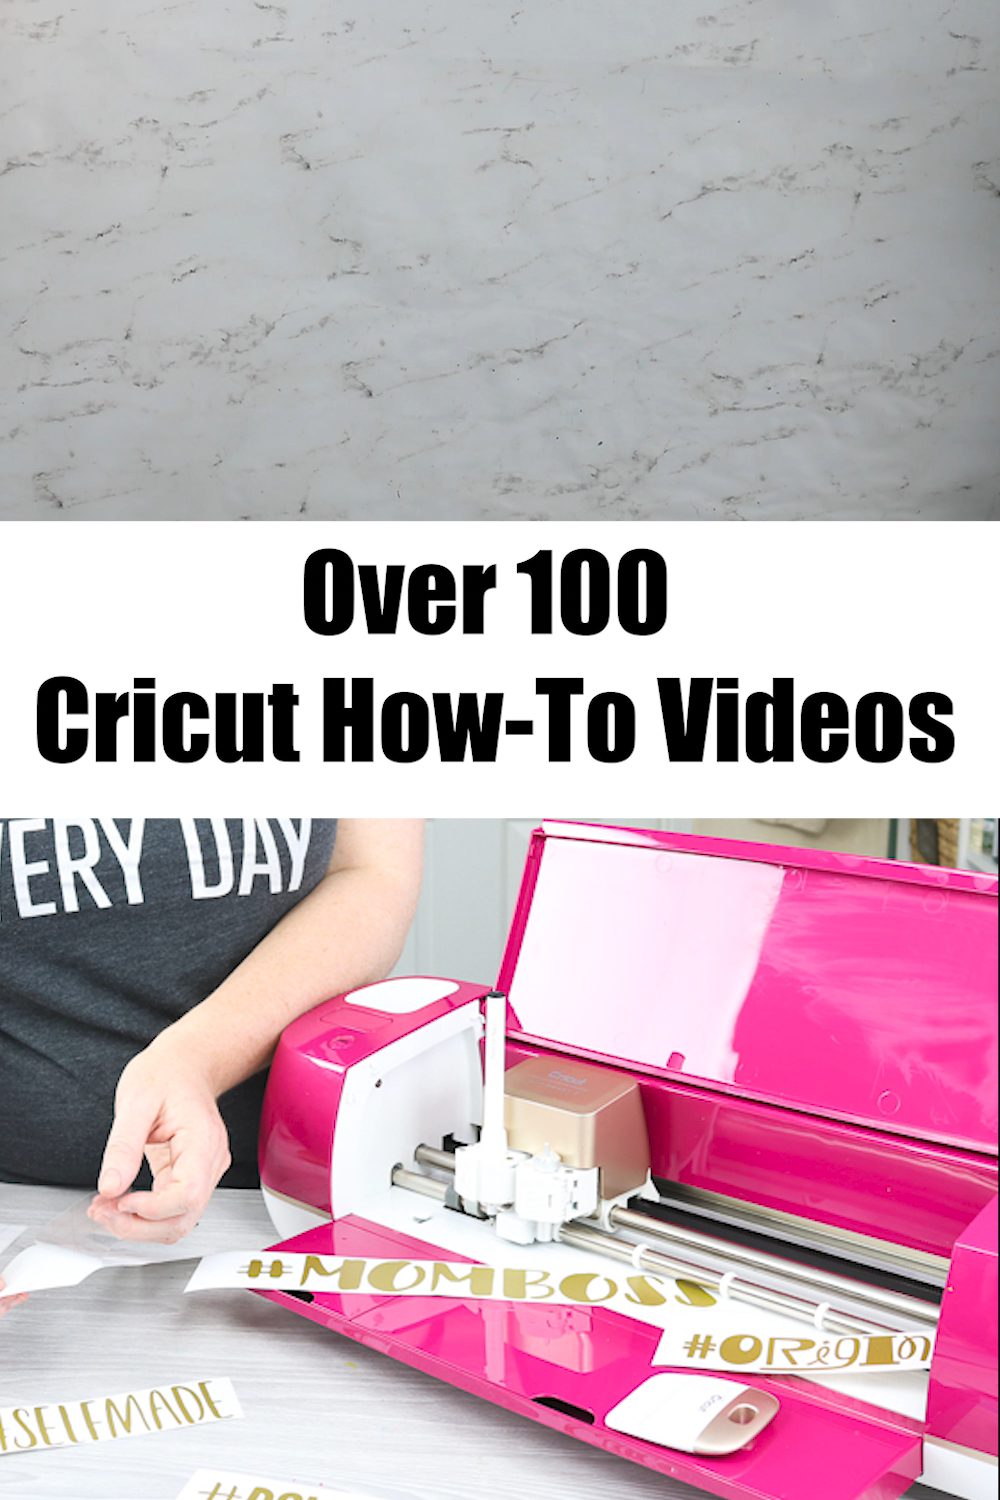 Over 100 Cricut How-to Videos to Learn Your Cricut Machine